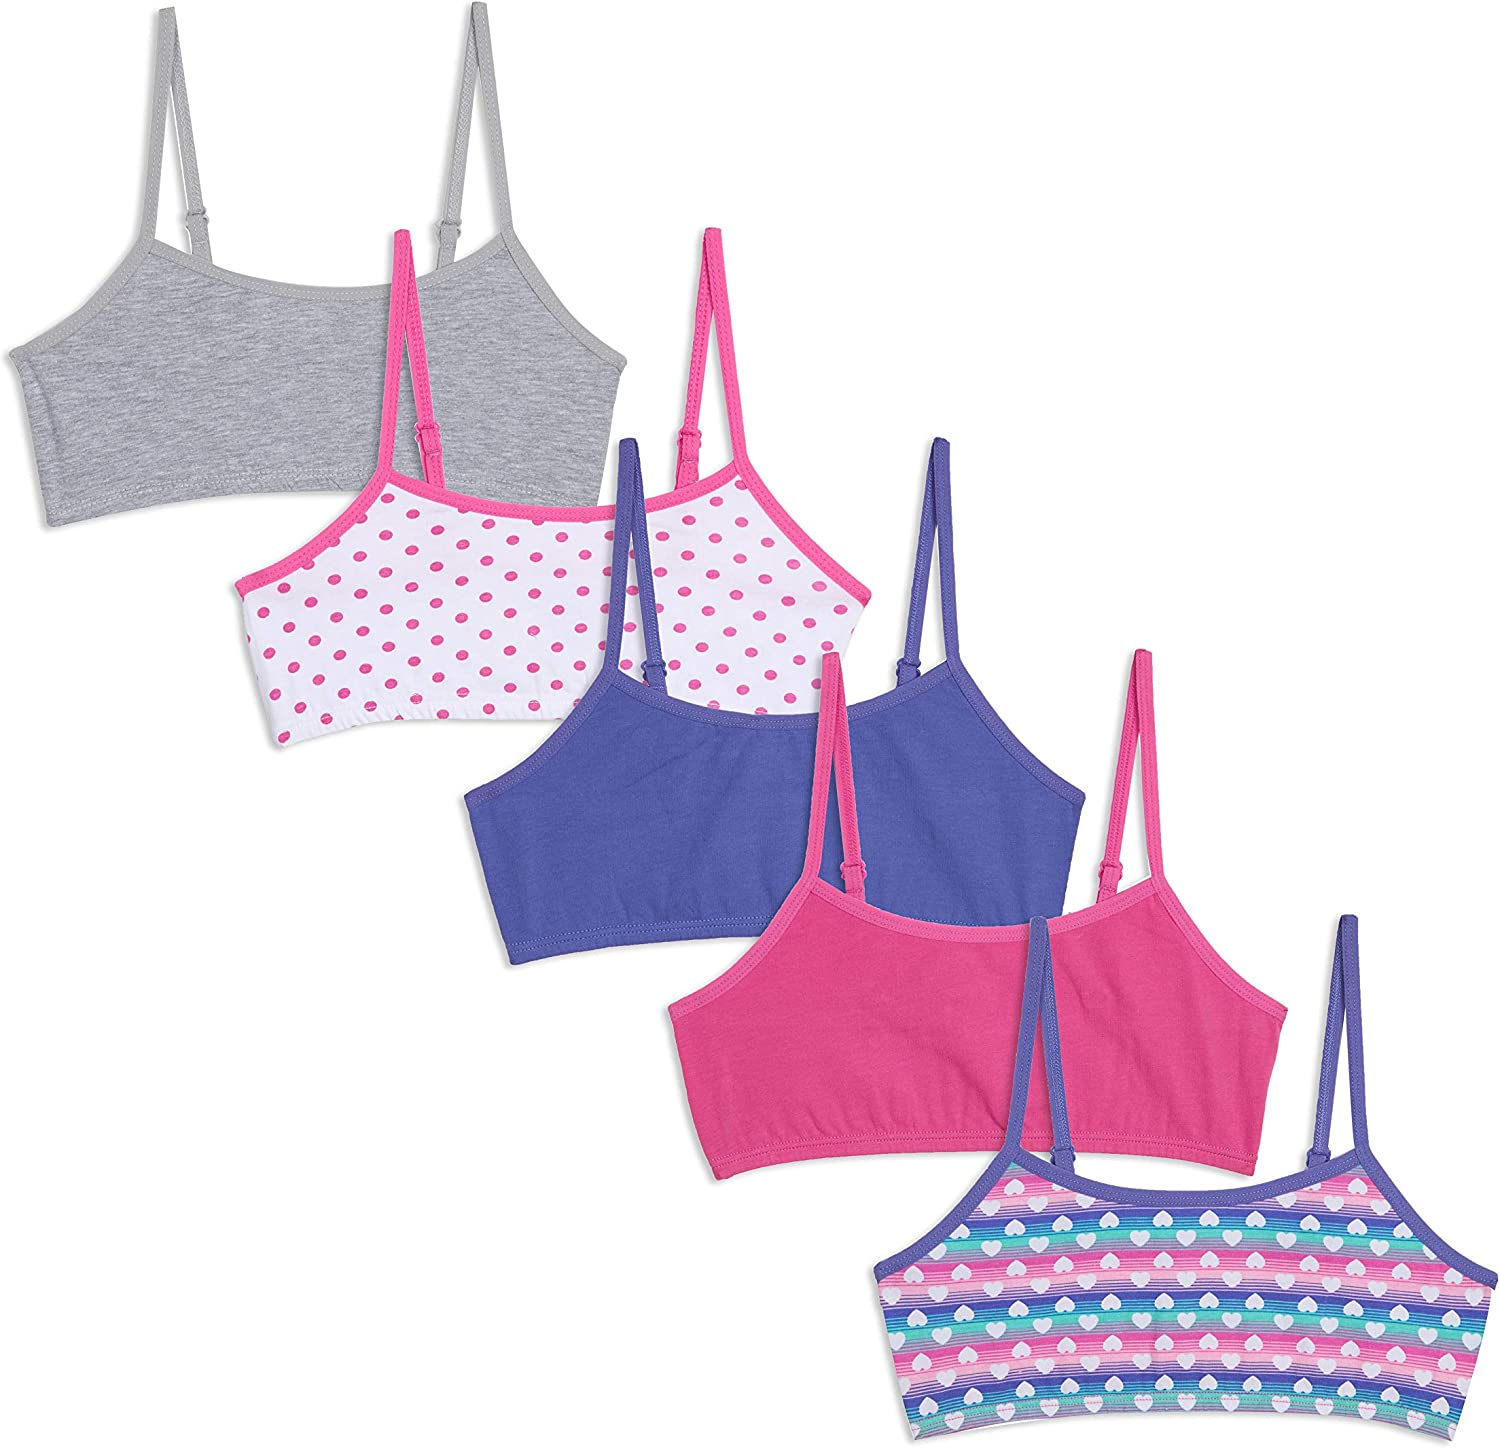 COVER GIRL Girls 5-Pack Cotton Stretch Crop Bralette with Adjustable Straps